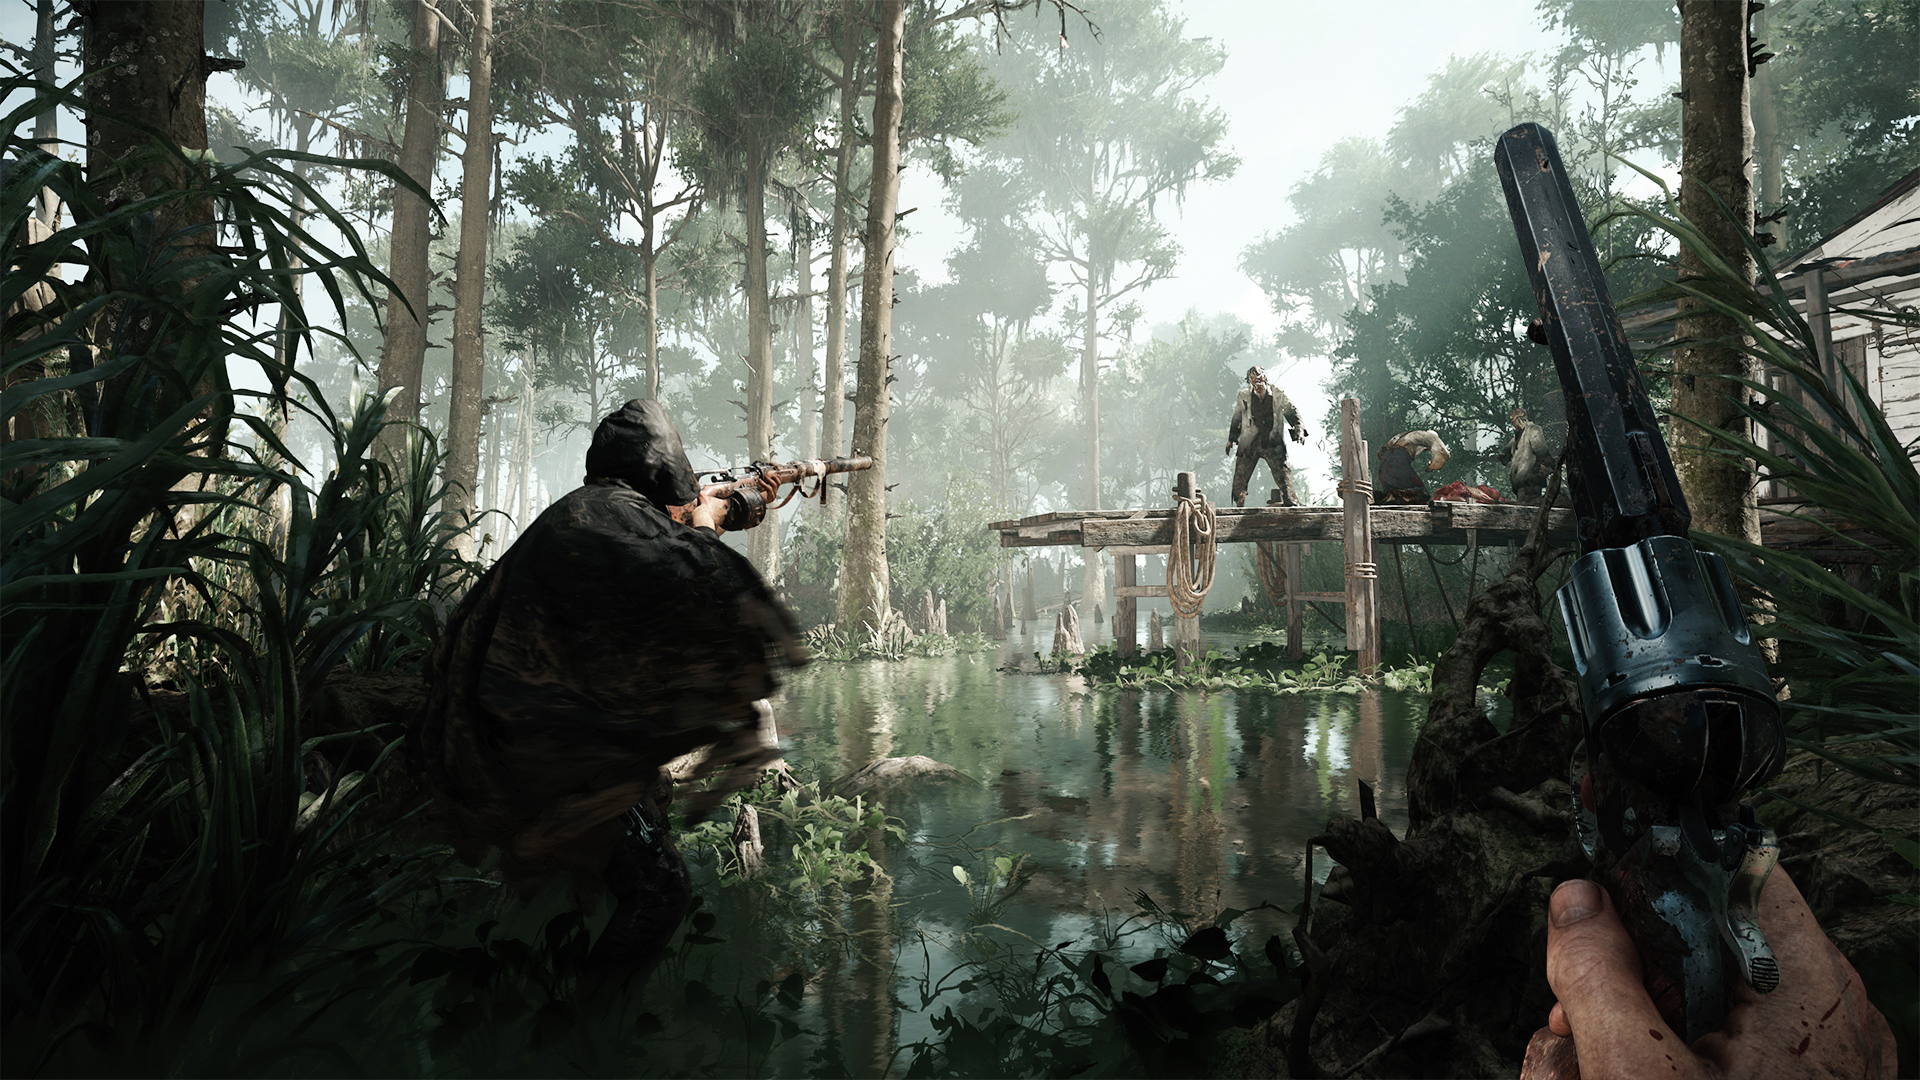 Hunt: Showdown's New Patch 1.2 Adds Weaponry, AI Improvements, General Updates